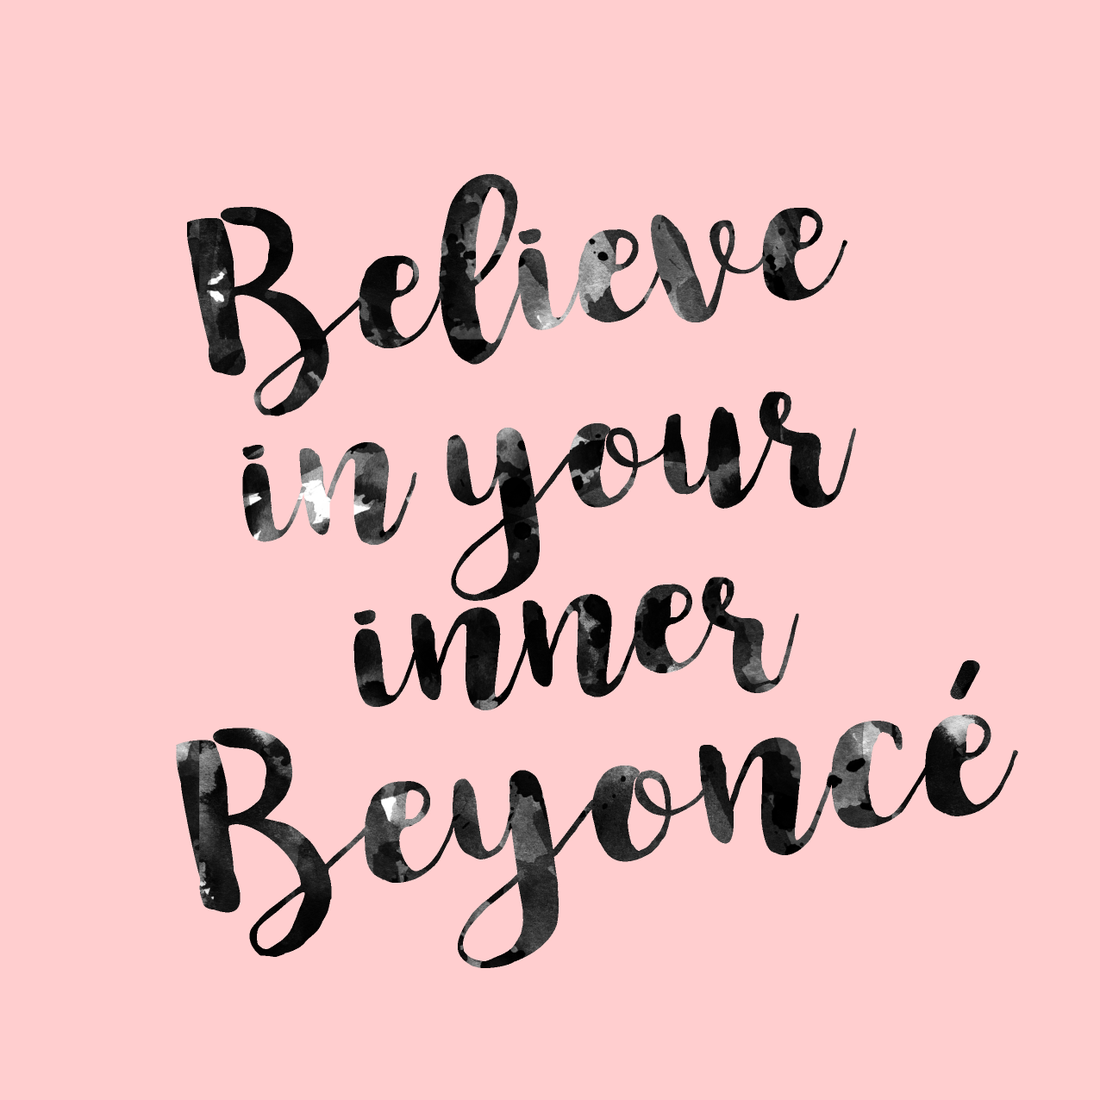 18 Inspirational Quotes for Girl Bosses - Based On